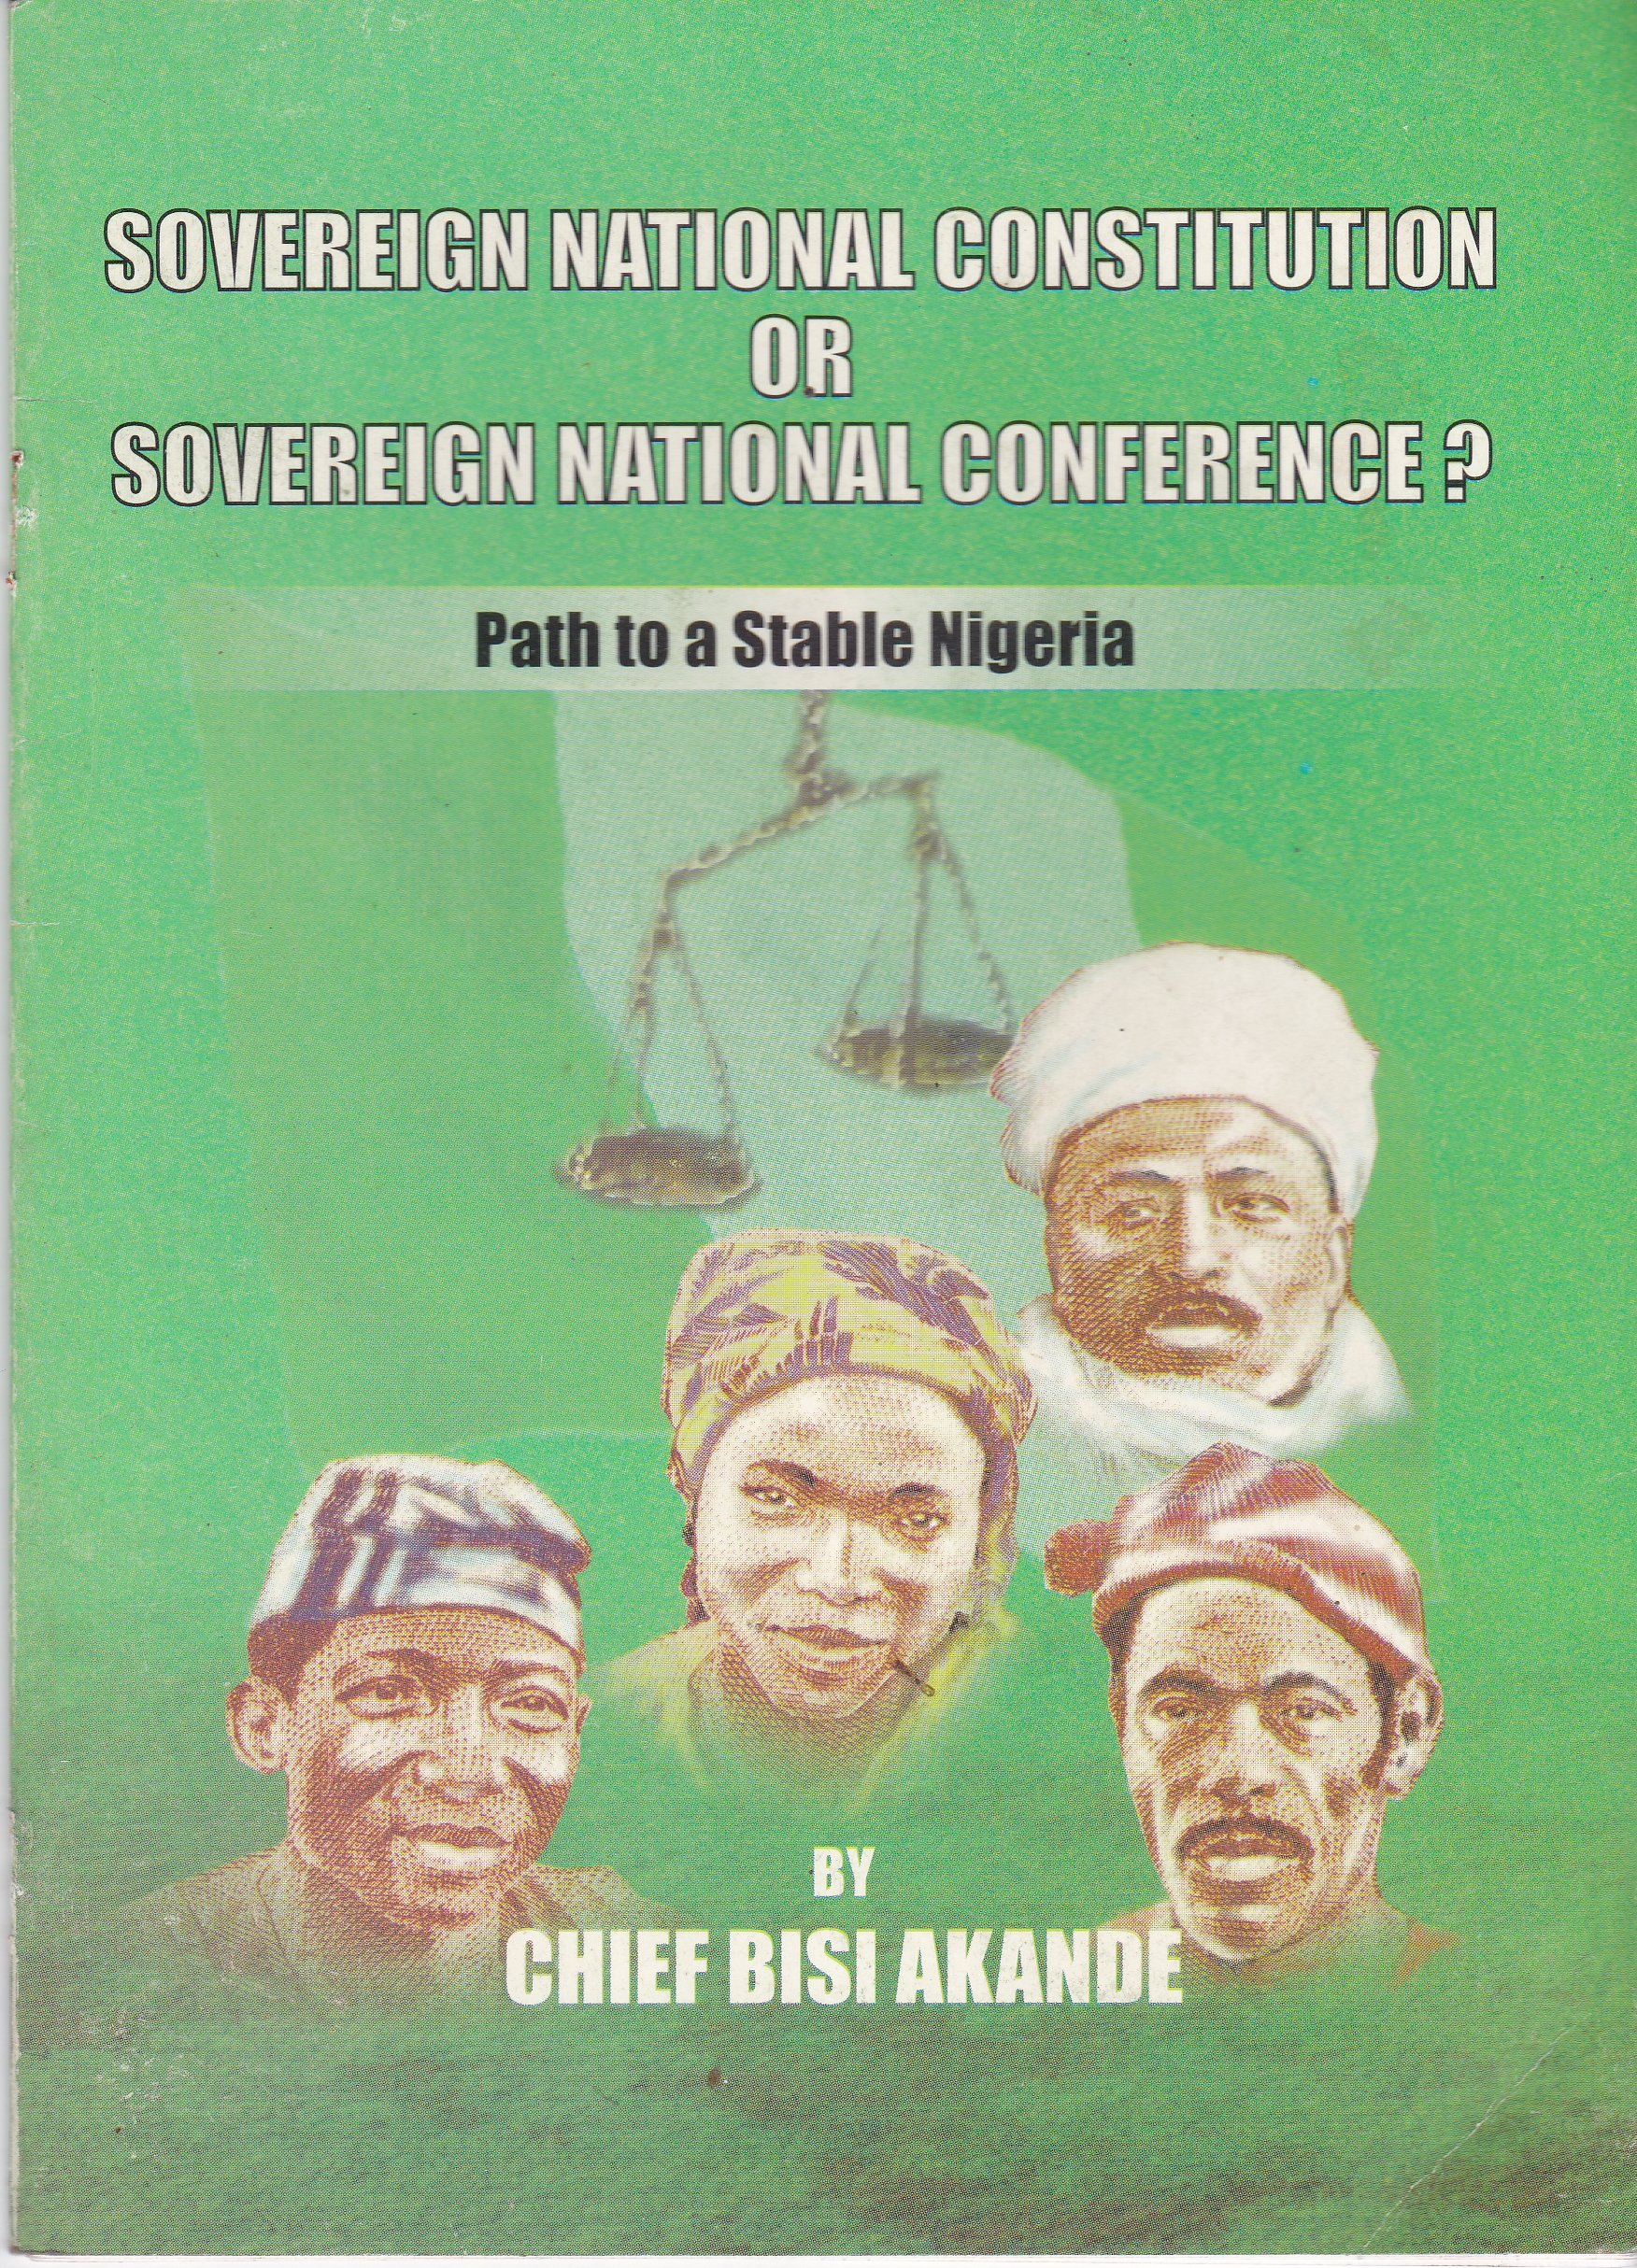 Sovereign National Constitution OR Conference